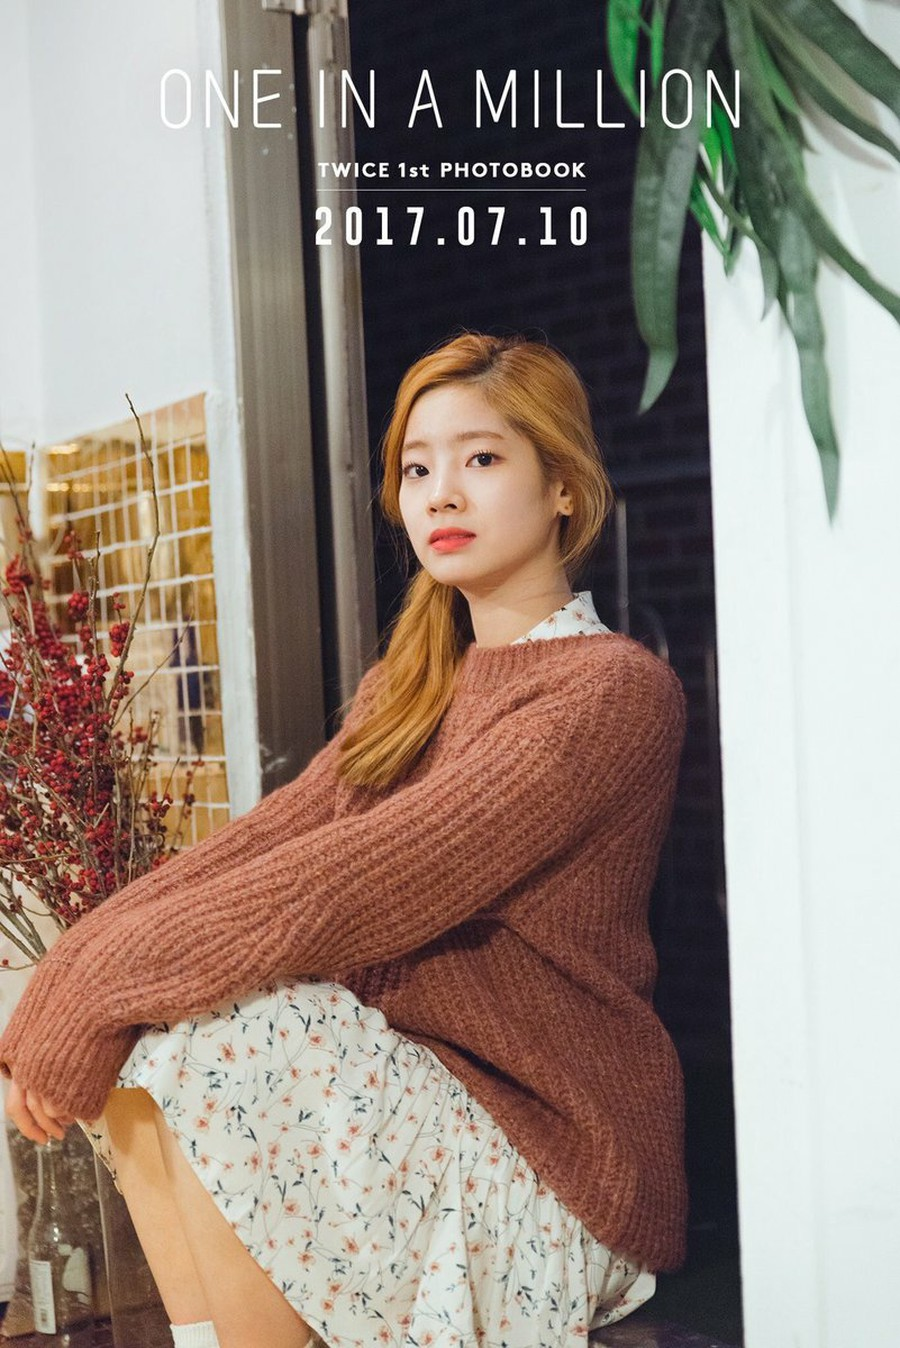 Twice The First Photo Collection One In A Million Released On